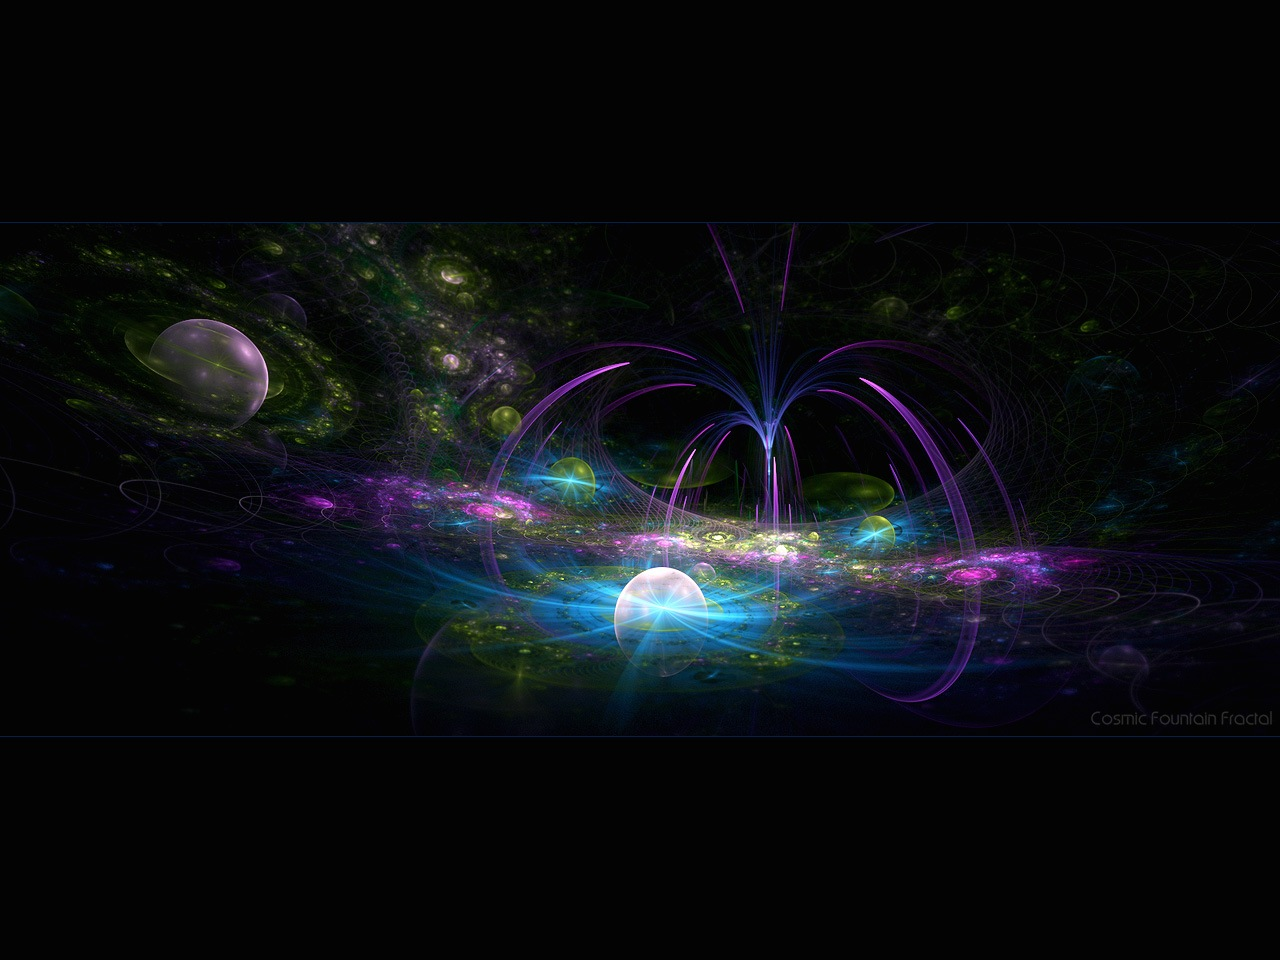 3d Wallpaper Pack Free Download Strictly Wallpaper 3d Night Life Wallpapers